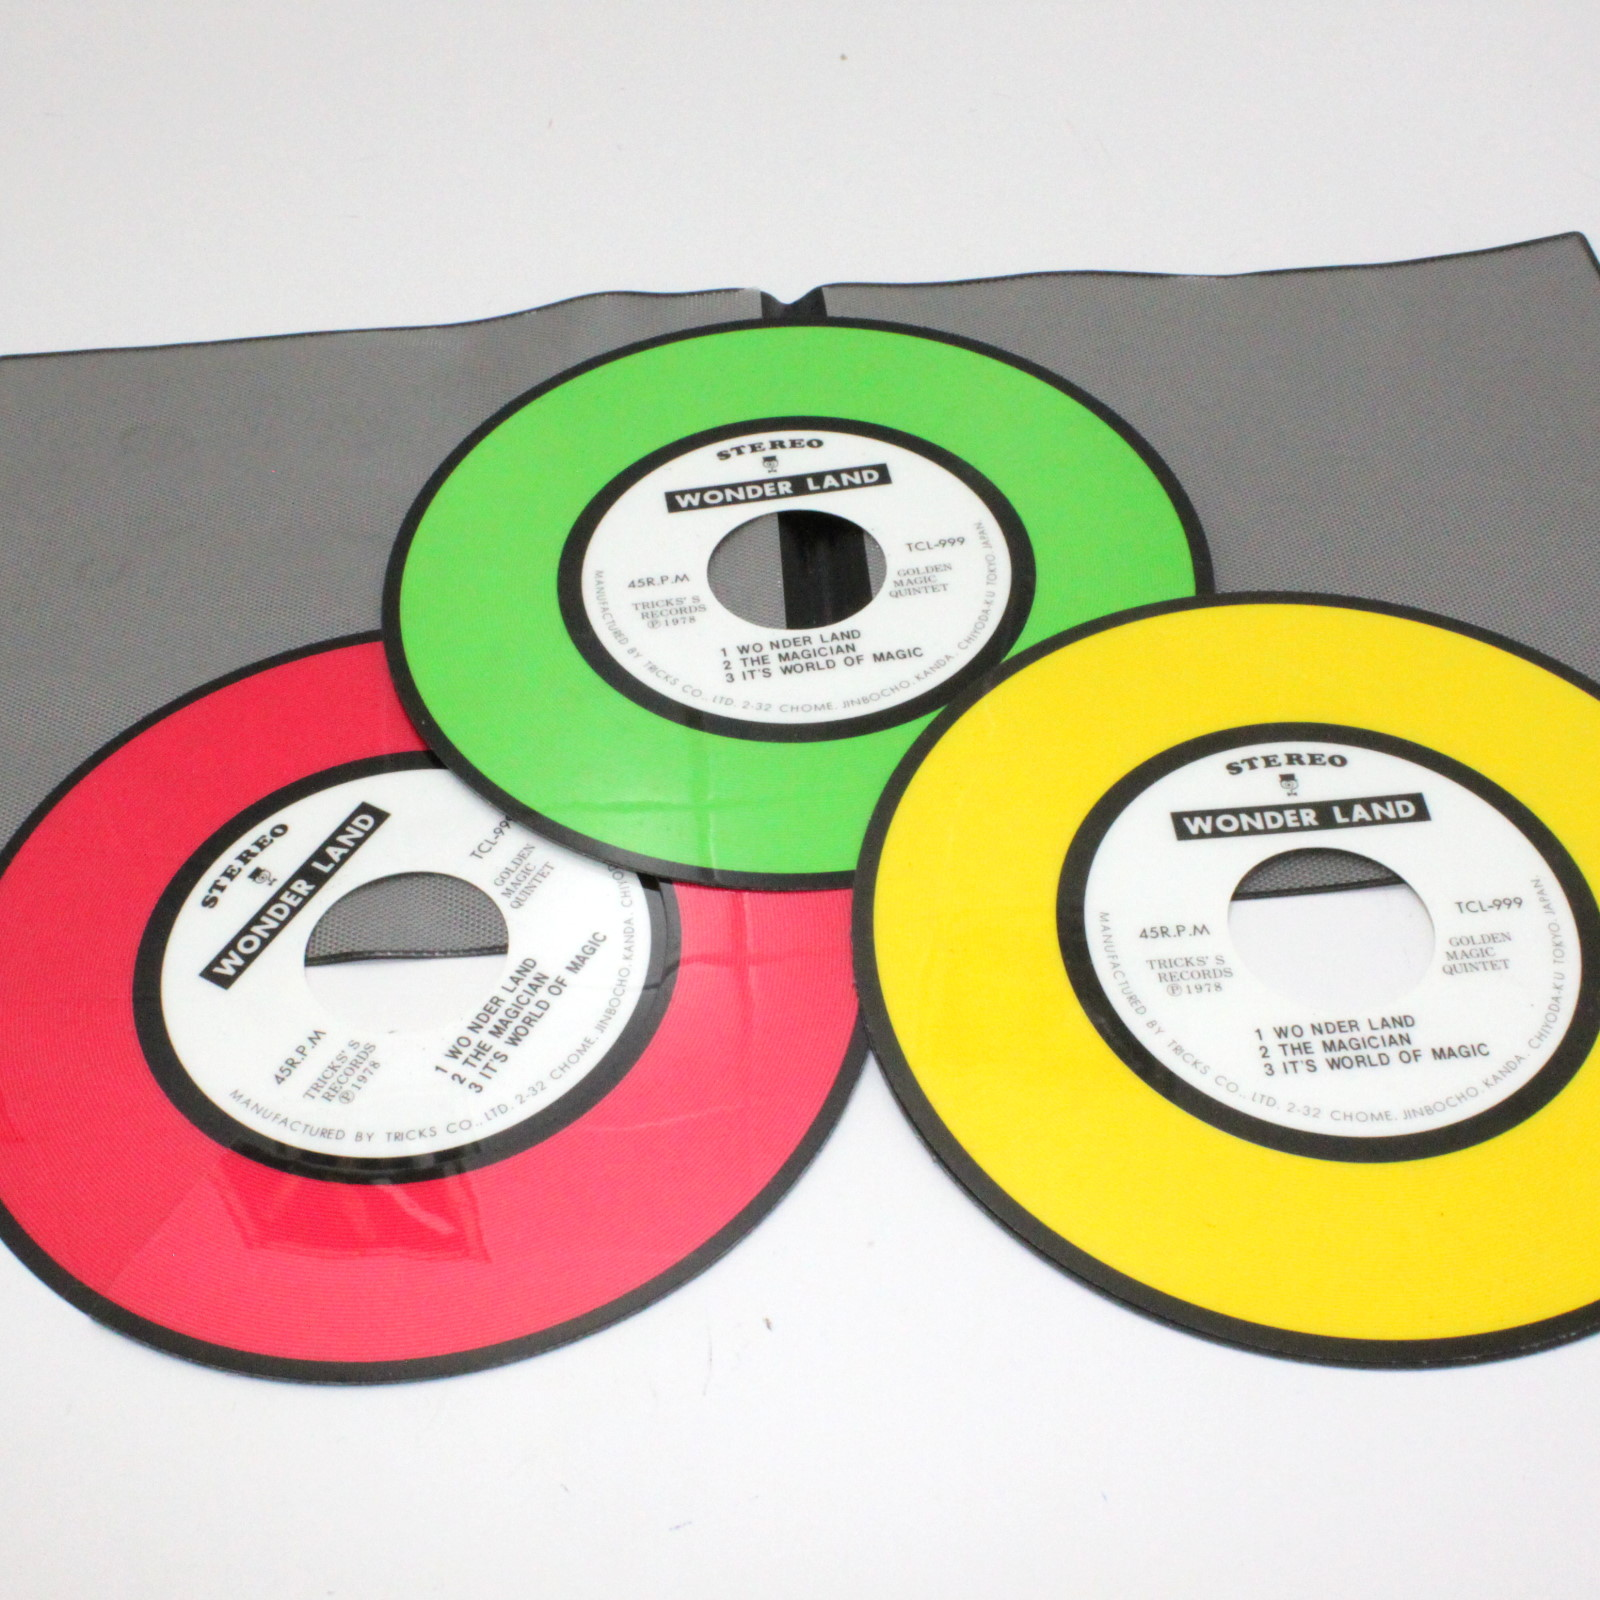 Color Changing Records by Tricks Co.